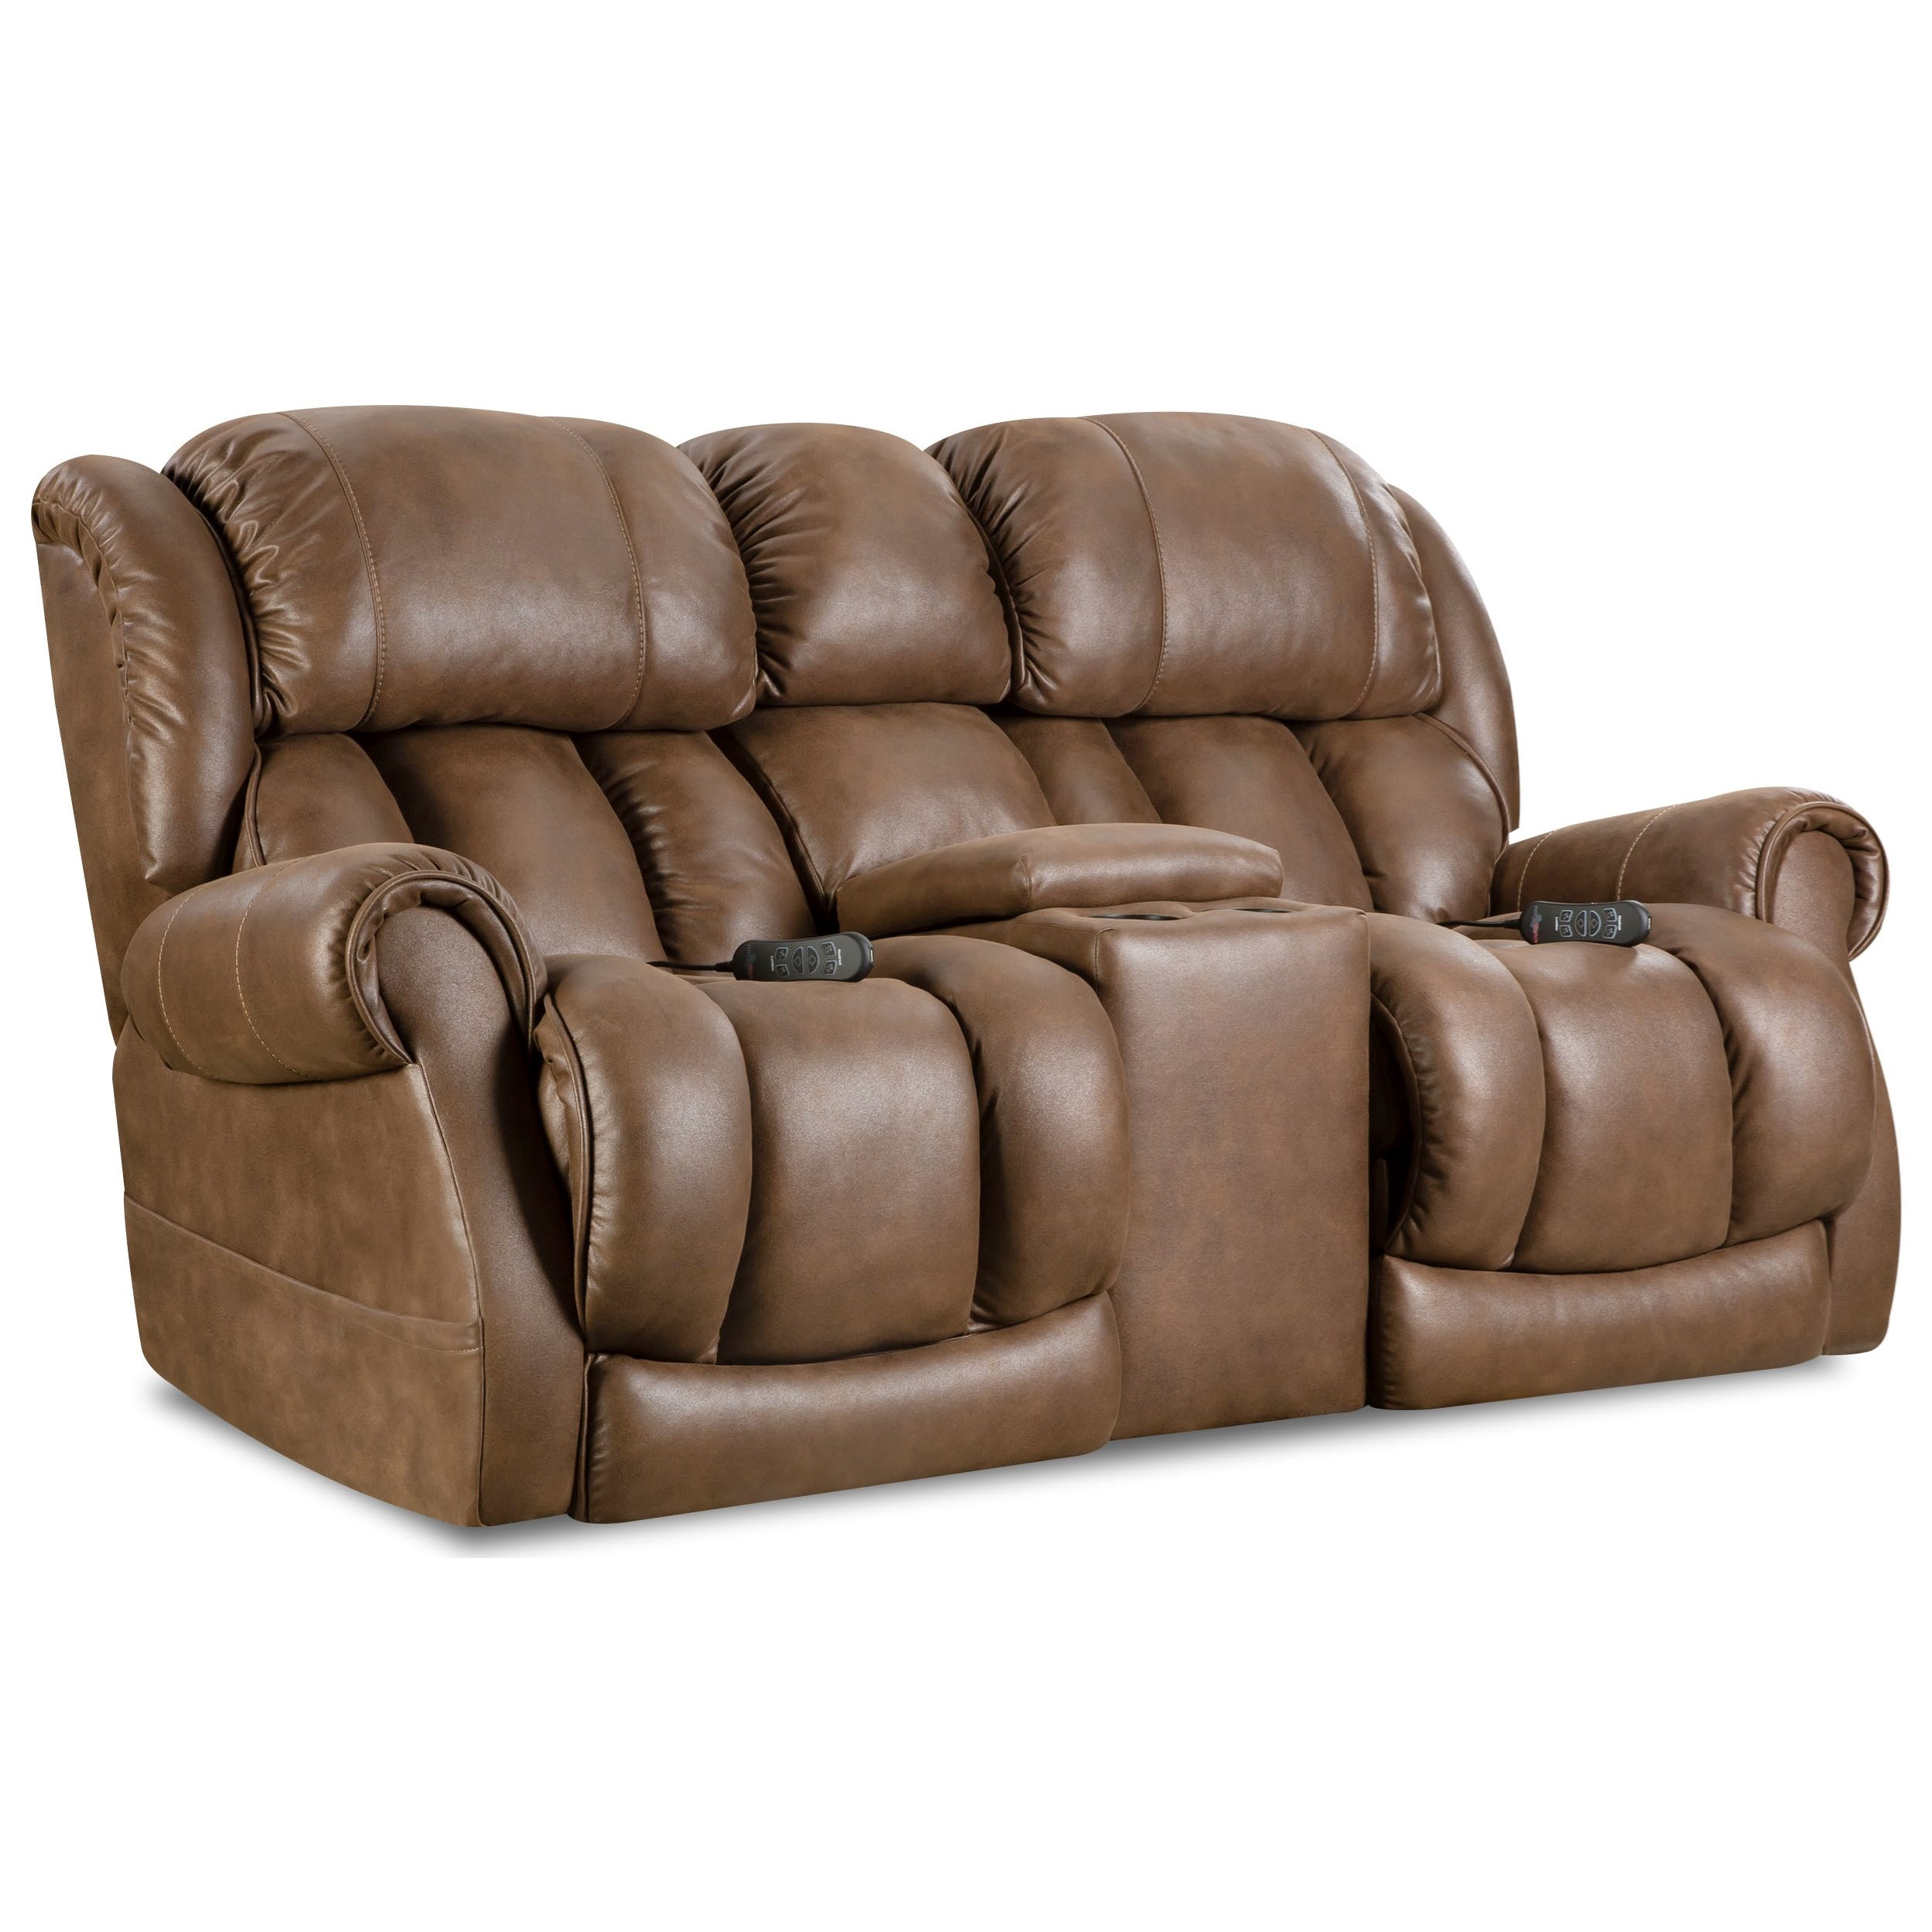 Homestretch atlantis casual power reclining console loveseat with cup holders van hill Loveseat with cup holders